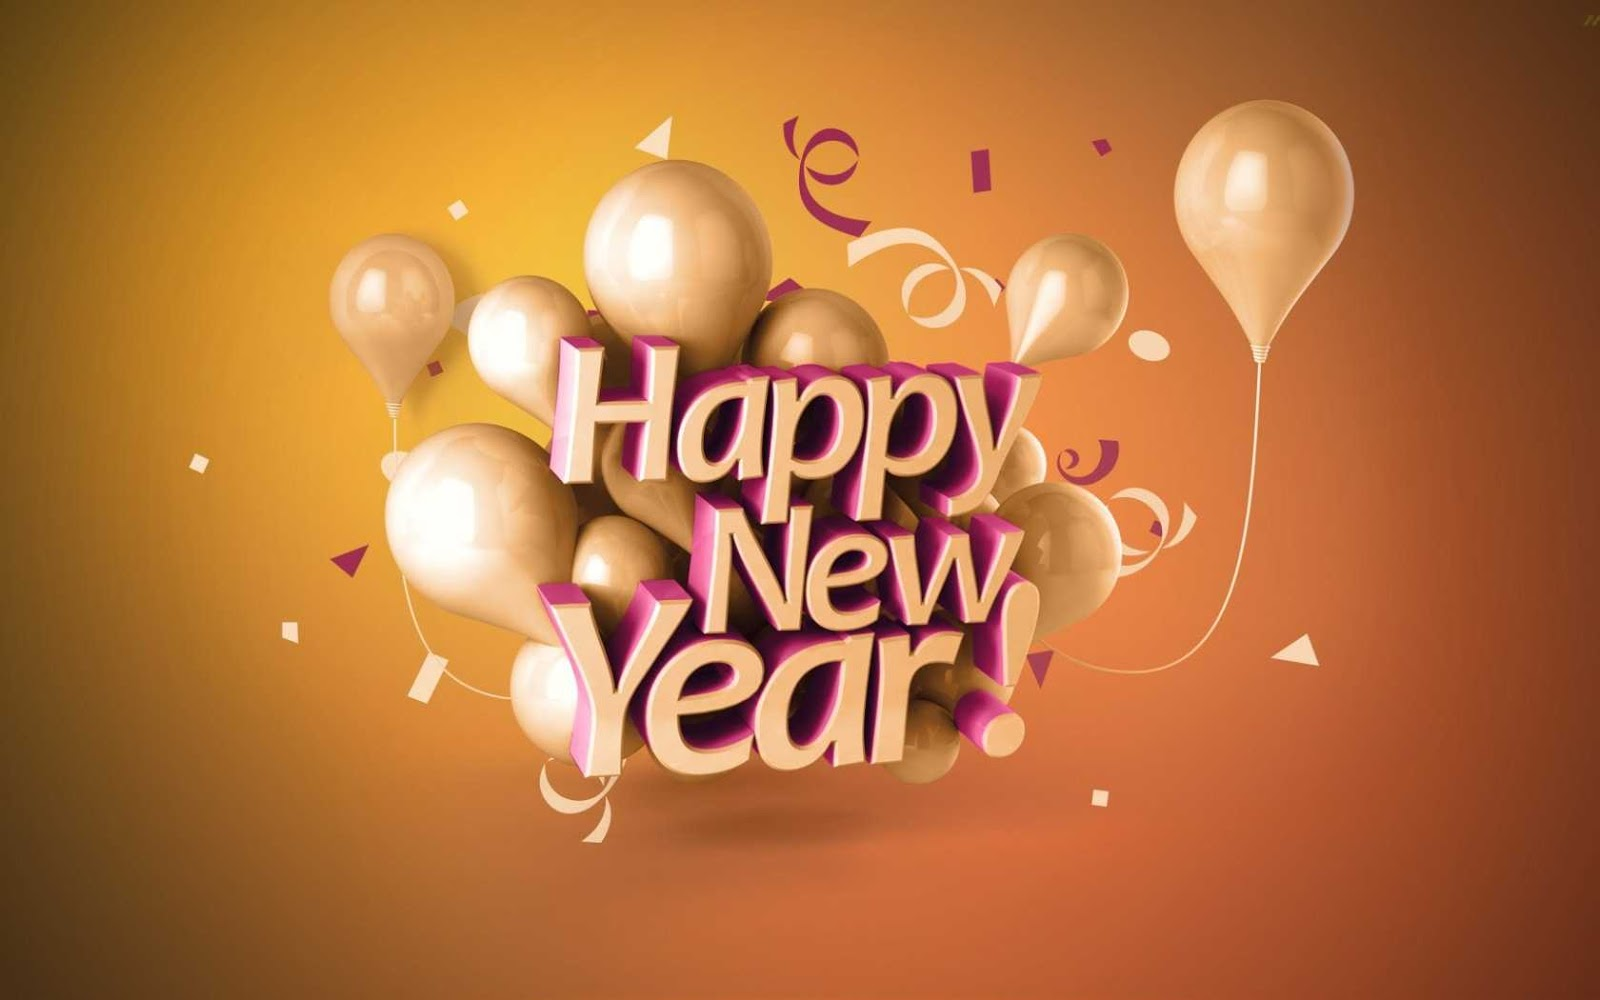 Happy New Year 2018 Wishes - New Year Wishes Images - Happy New Year ...